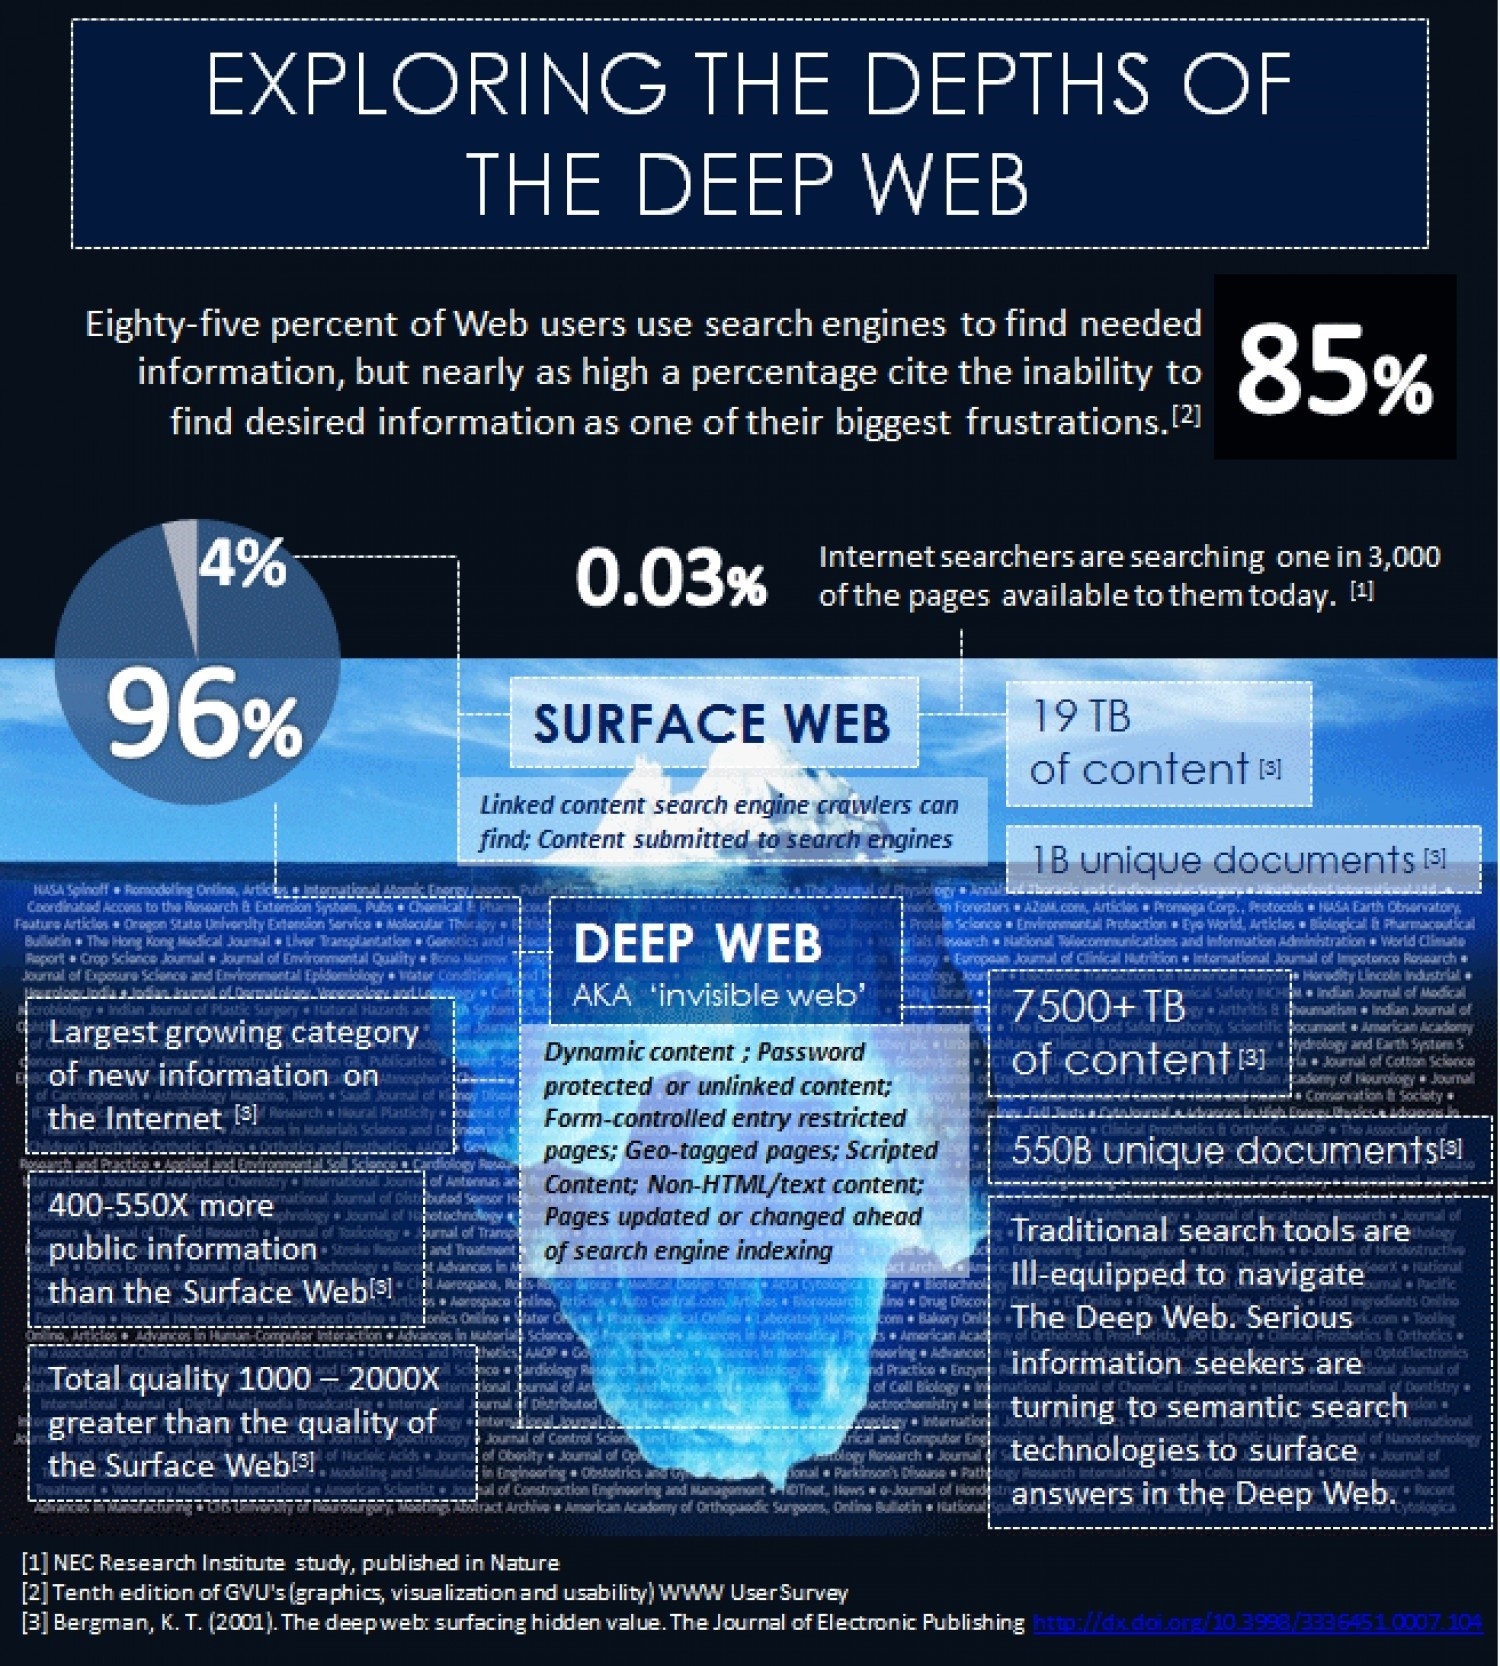 Exploring the depths of the deep web - Deep websites